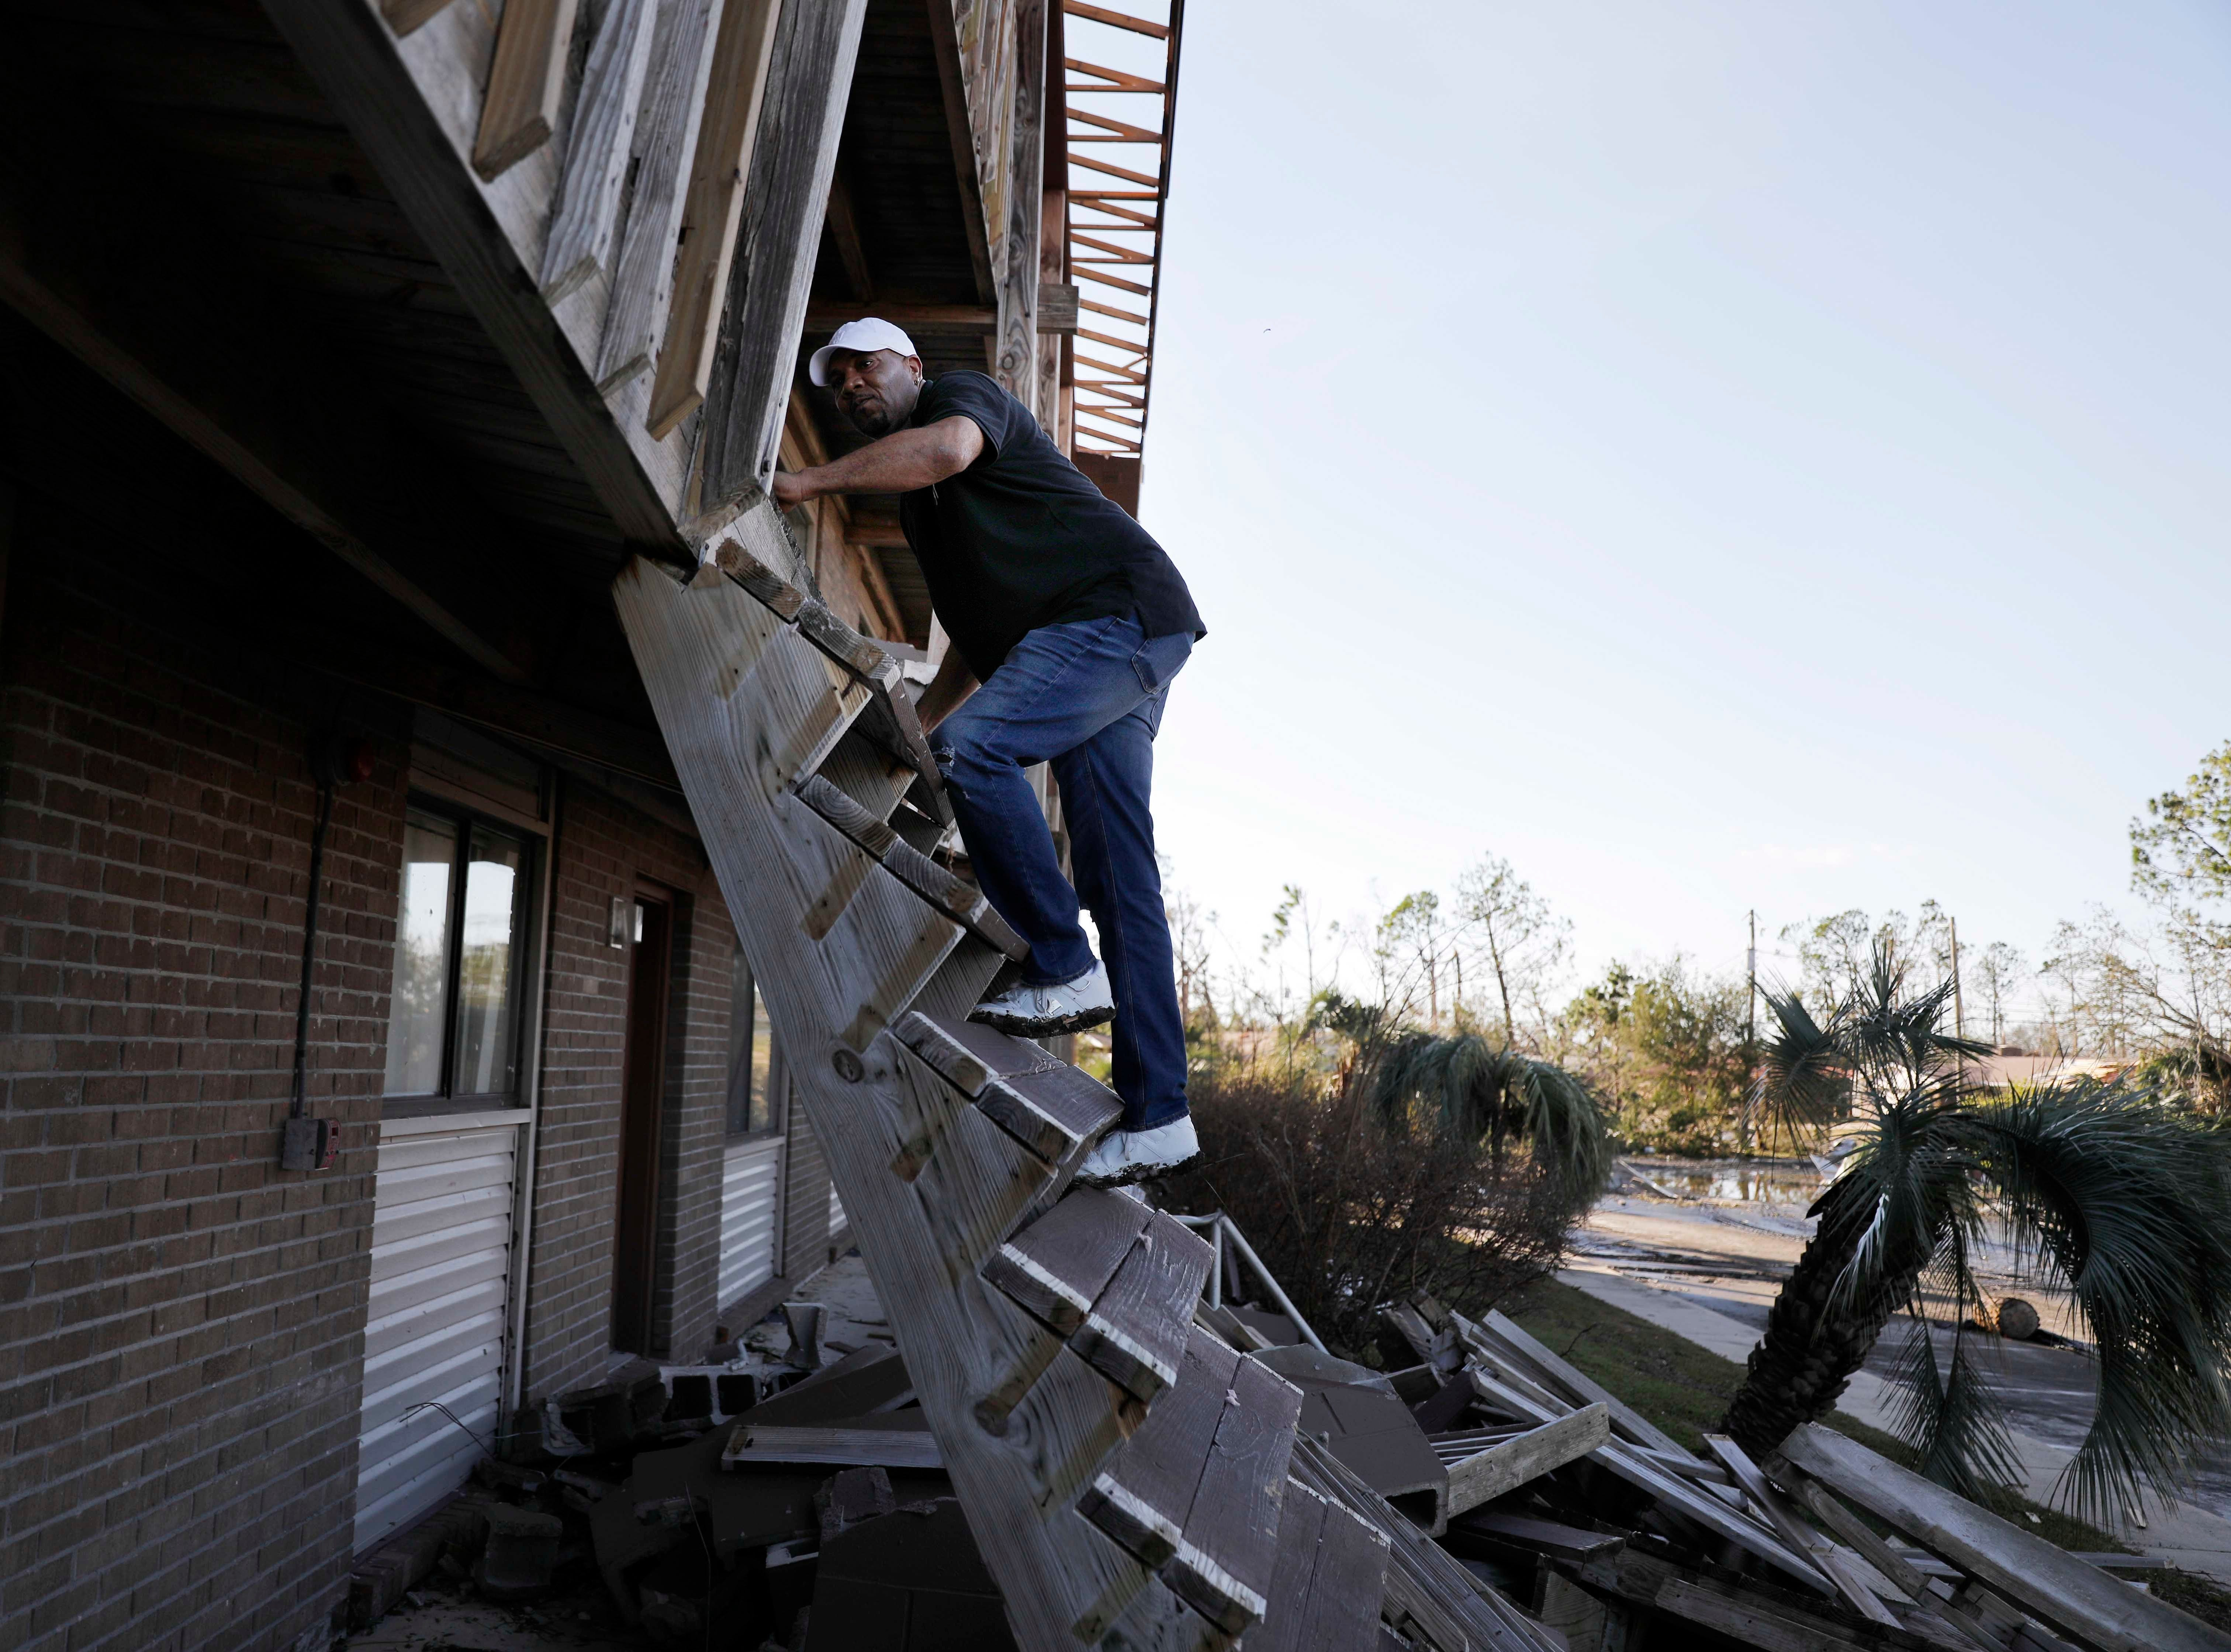 David Blackston climbs a damaged stairway to check on his second floor apartment in the aftermath of hurricane Michael in Callaway, Fla., Thursday, Oct. 11, 2018. Blackston and his wife evacuated to a hotel in Alabama on Monday ahead of the storm.